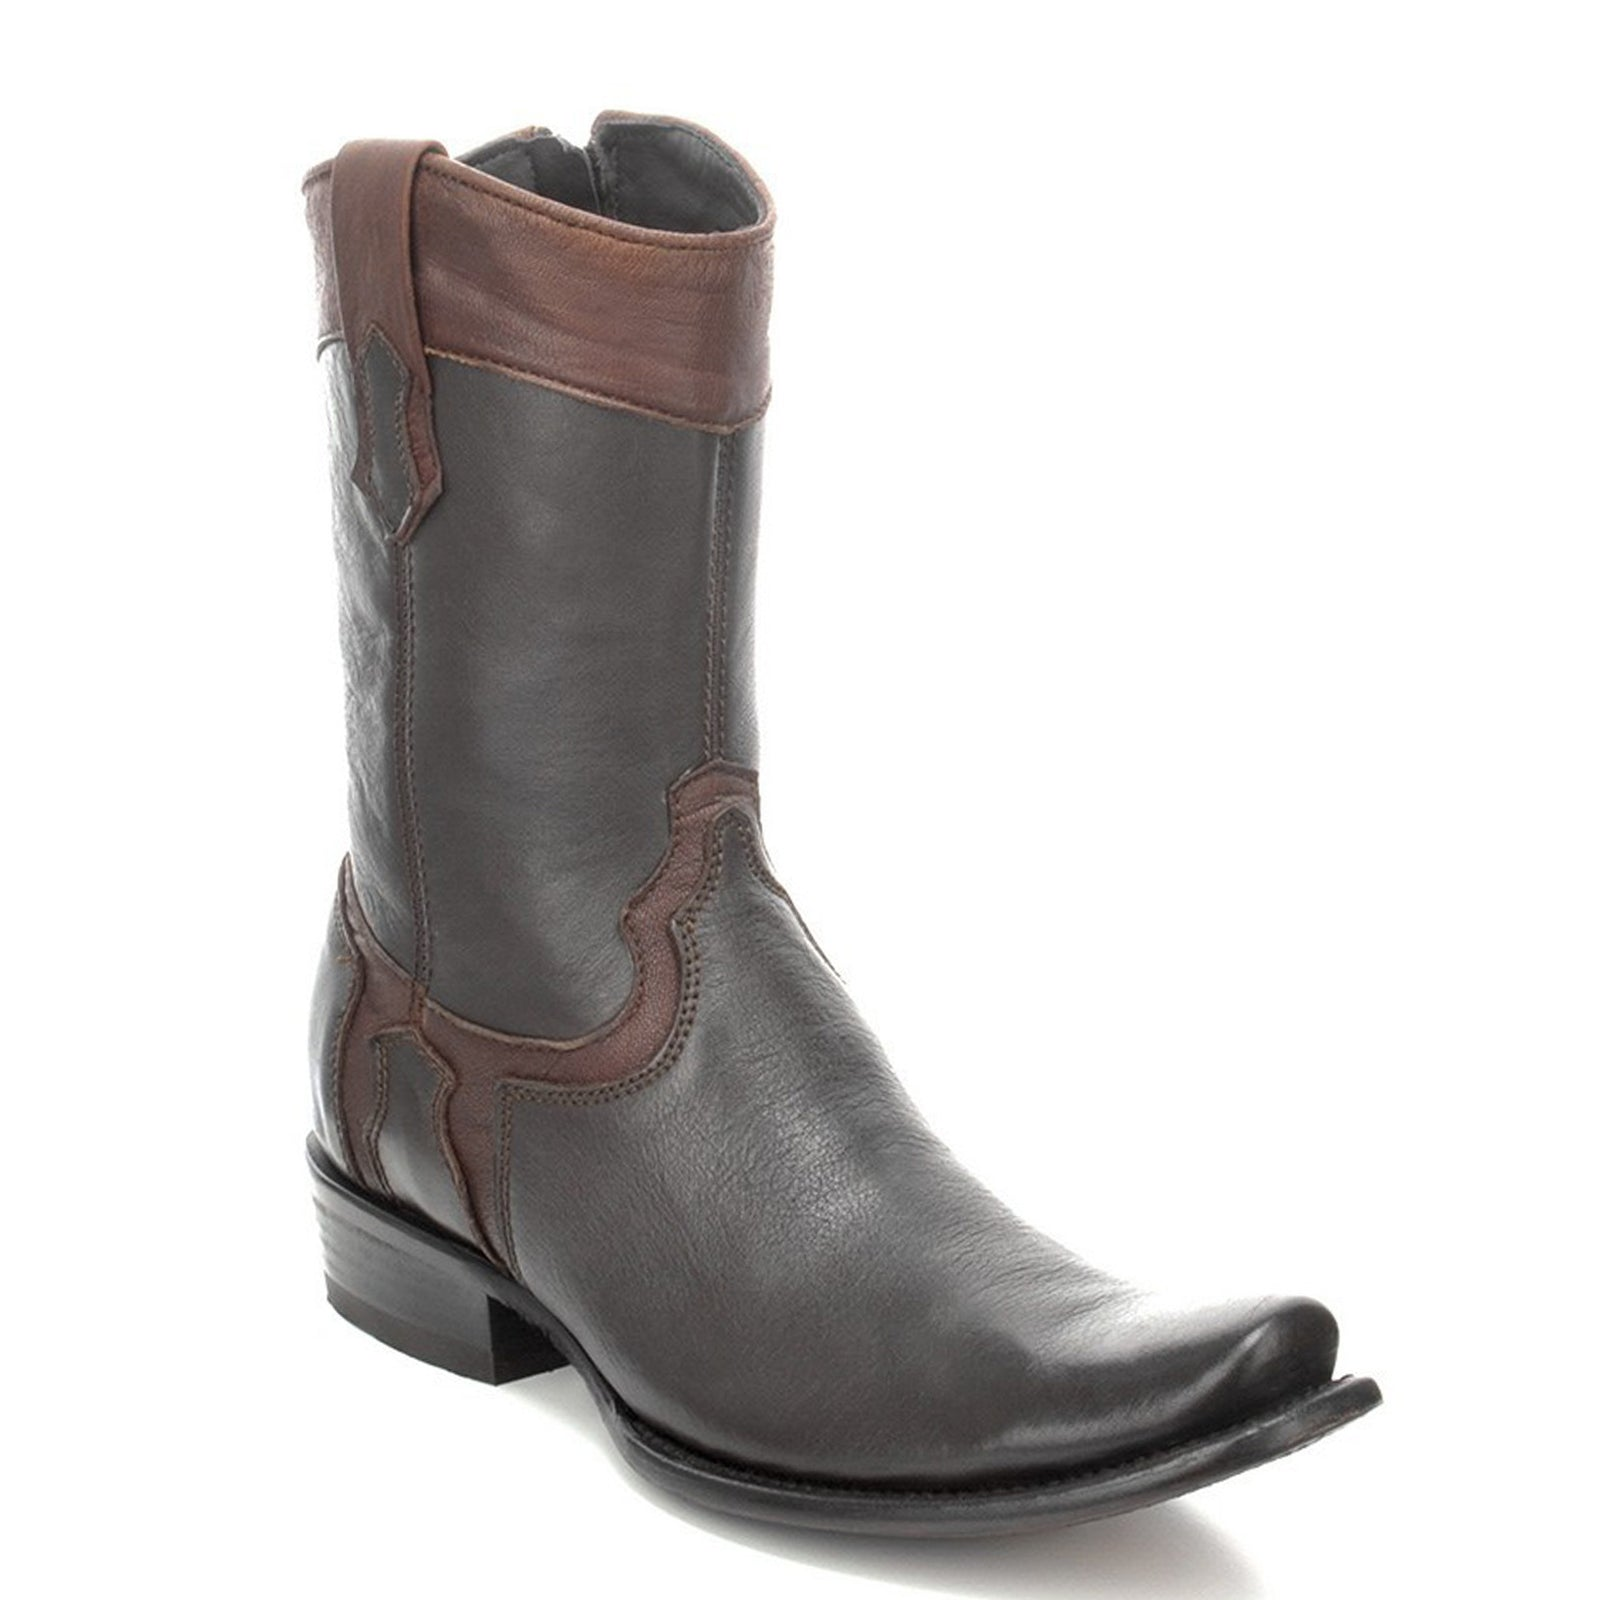 Cuadra Men's Molok Boot - Semi Square Toe